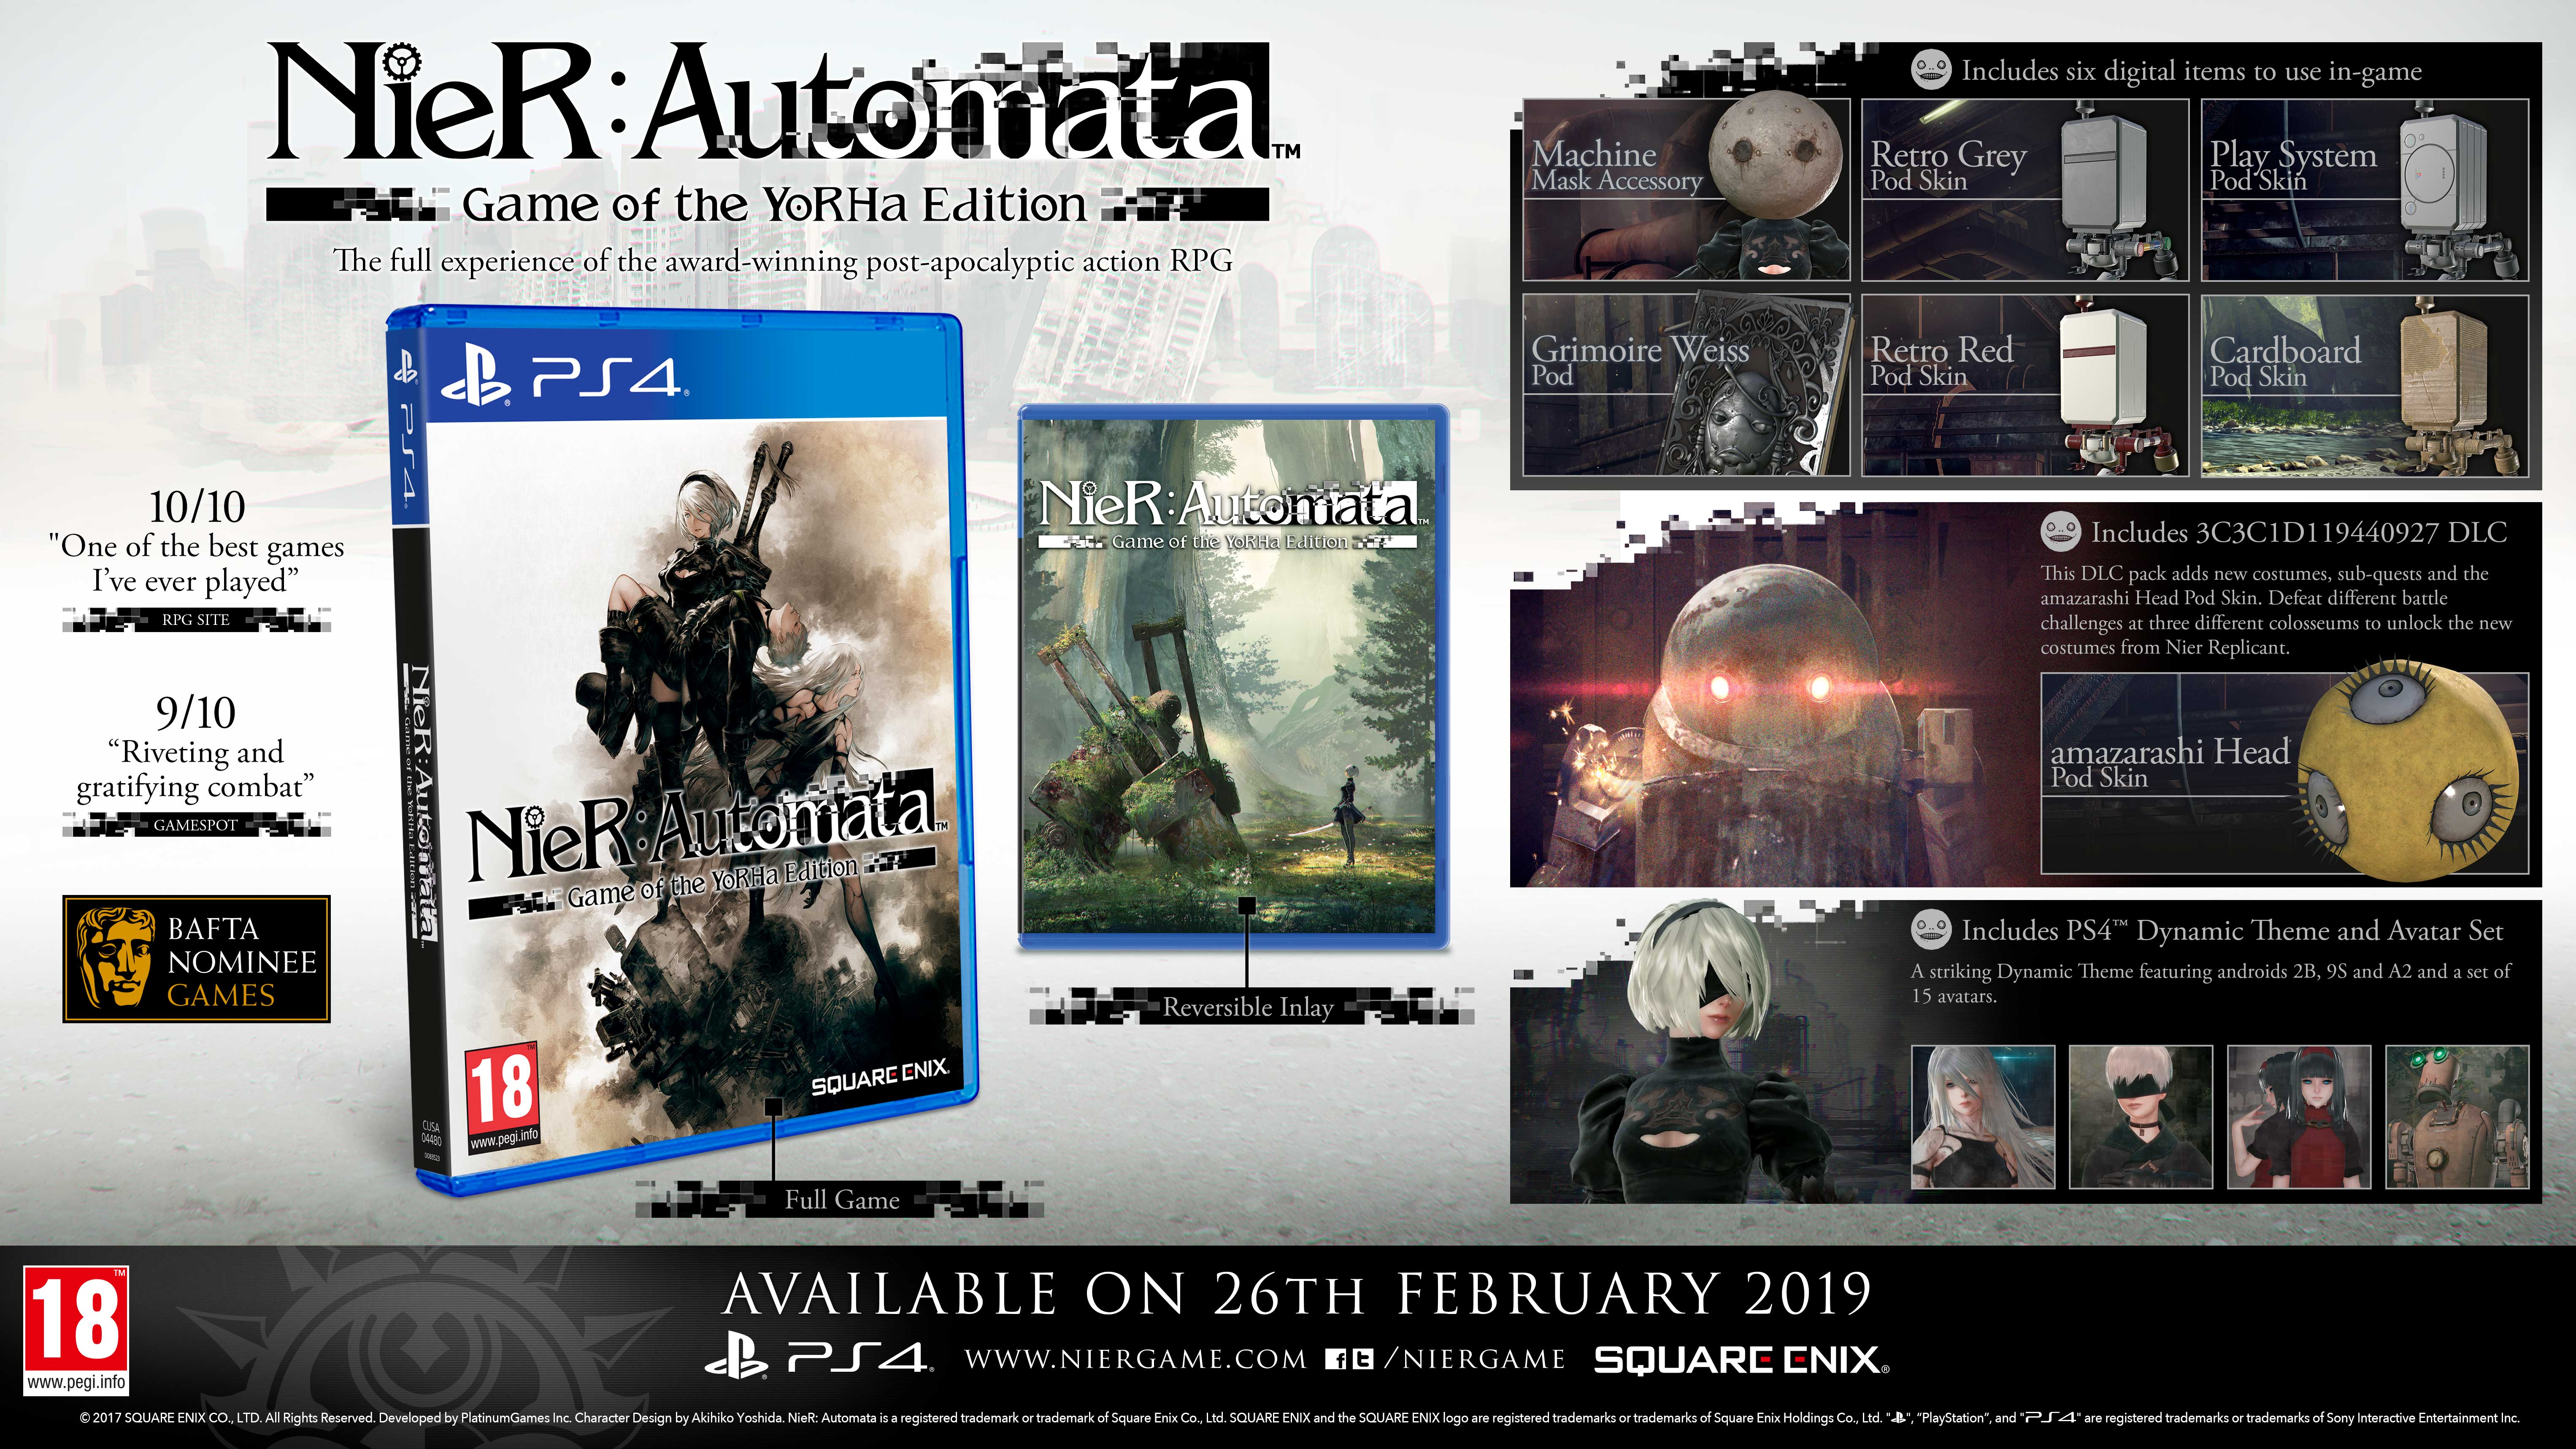 NieR: Automata (Game of the Year)